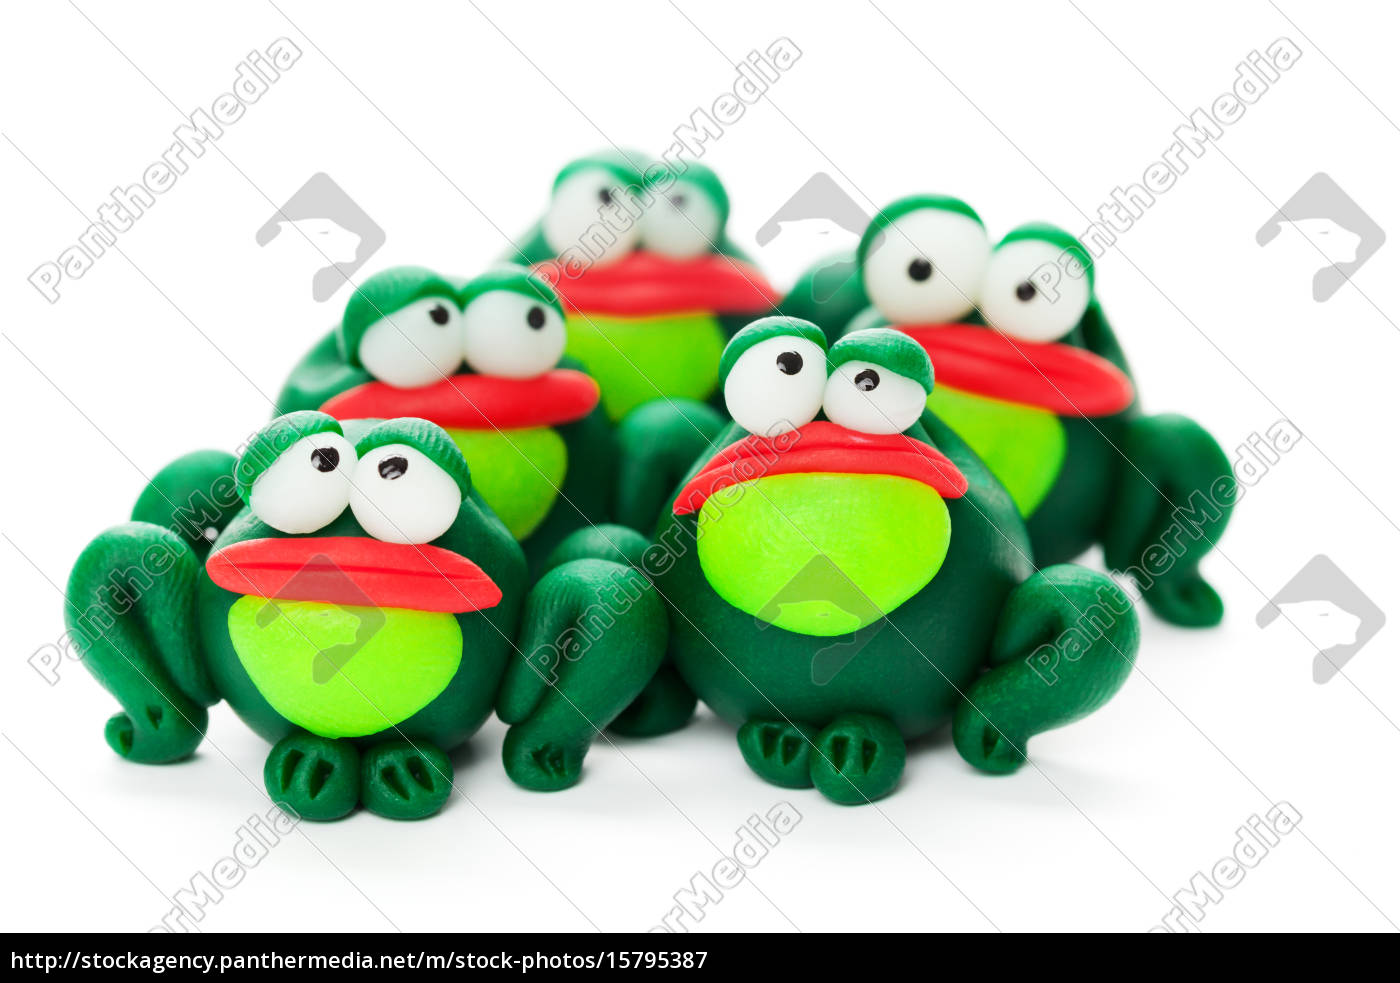 frogs - 15795387